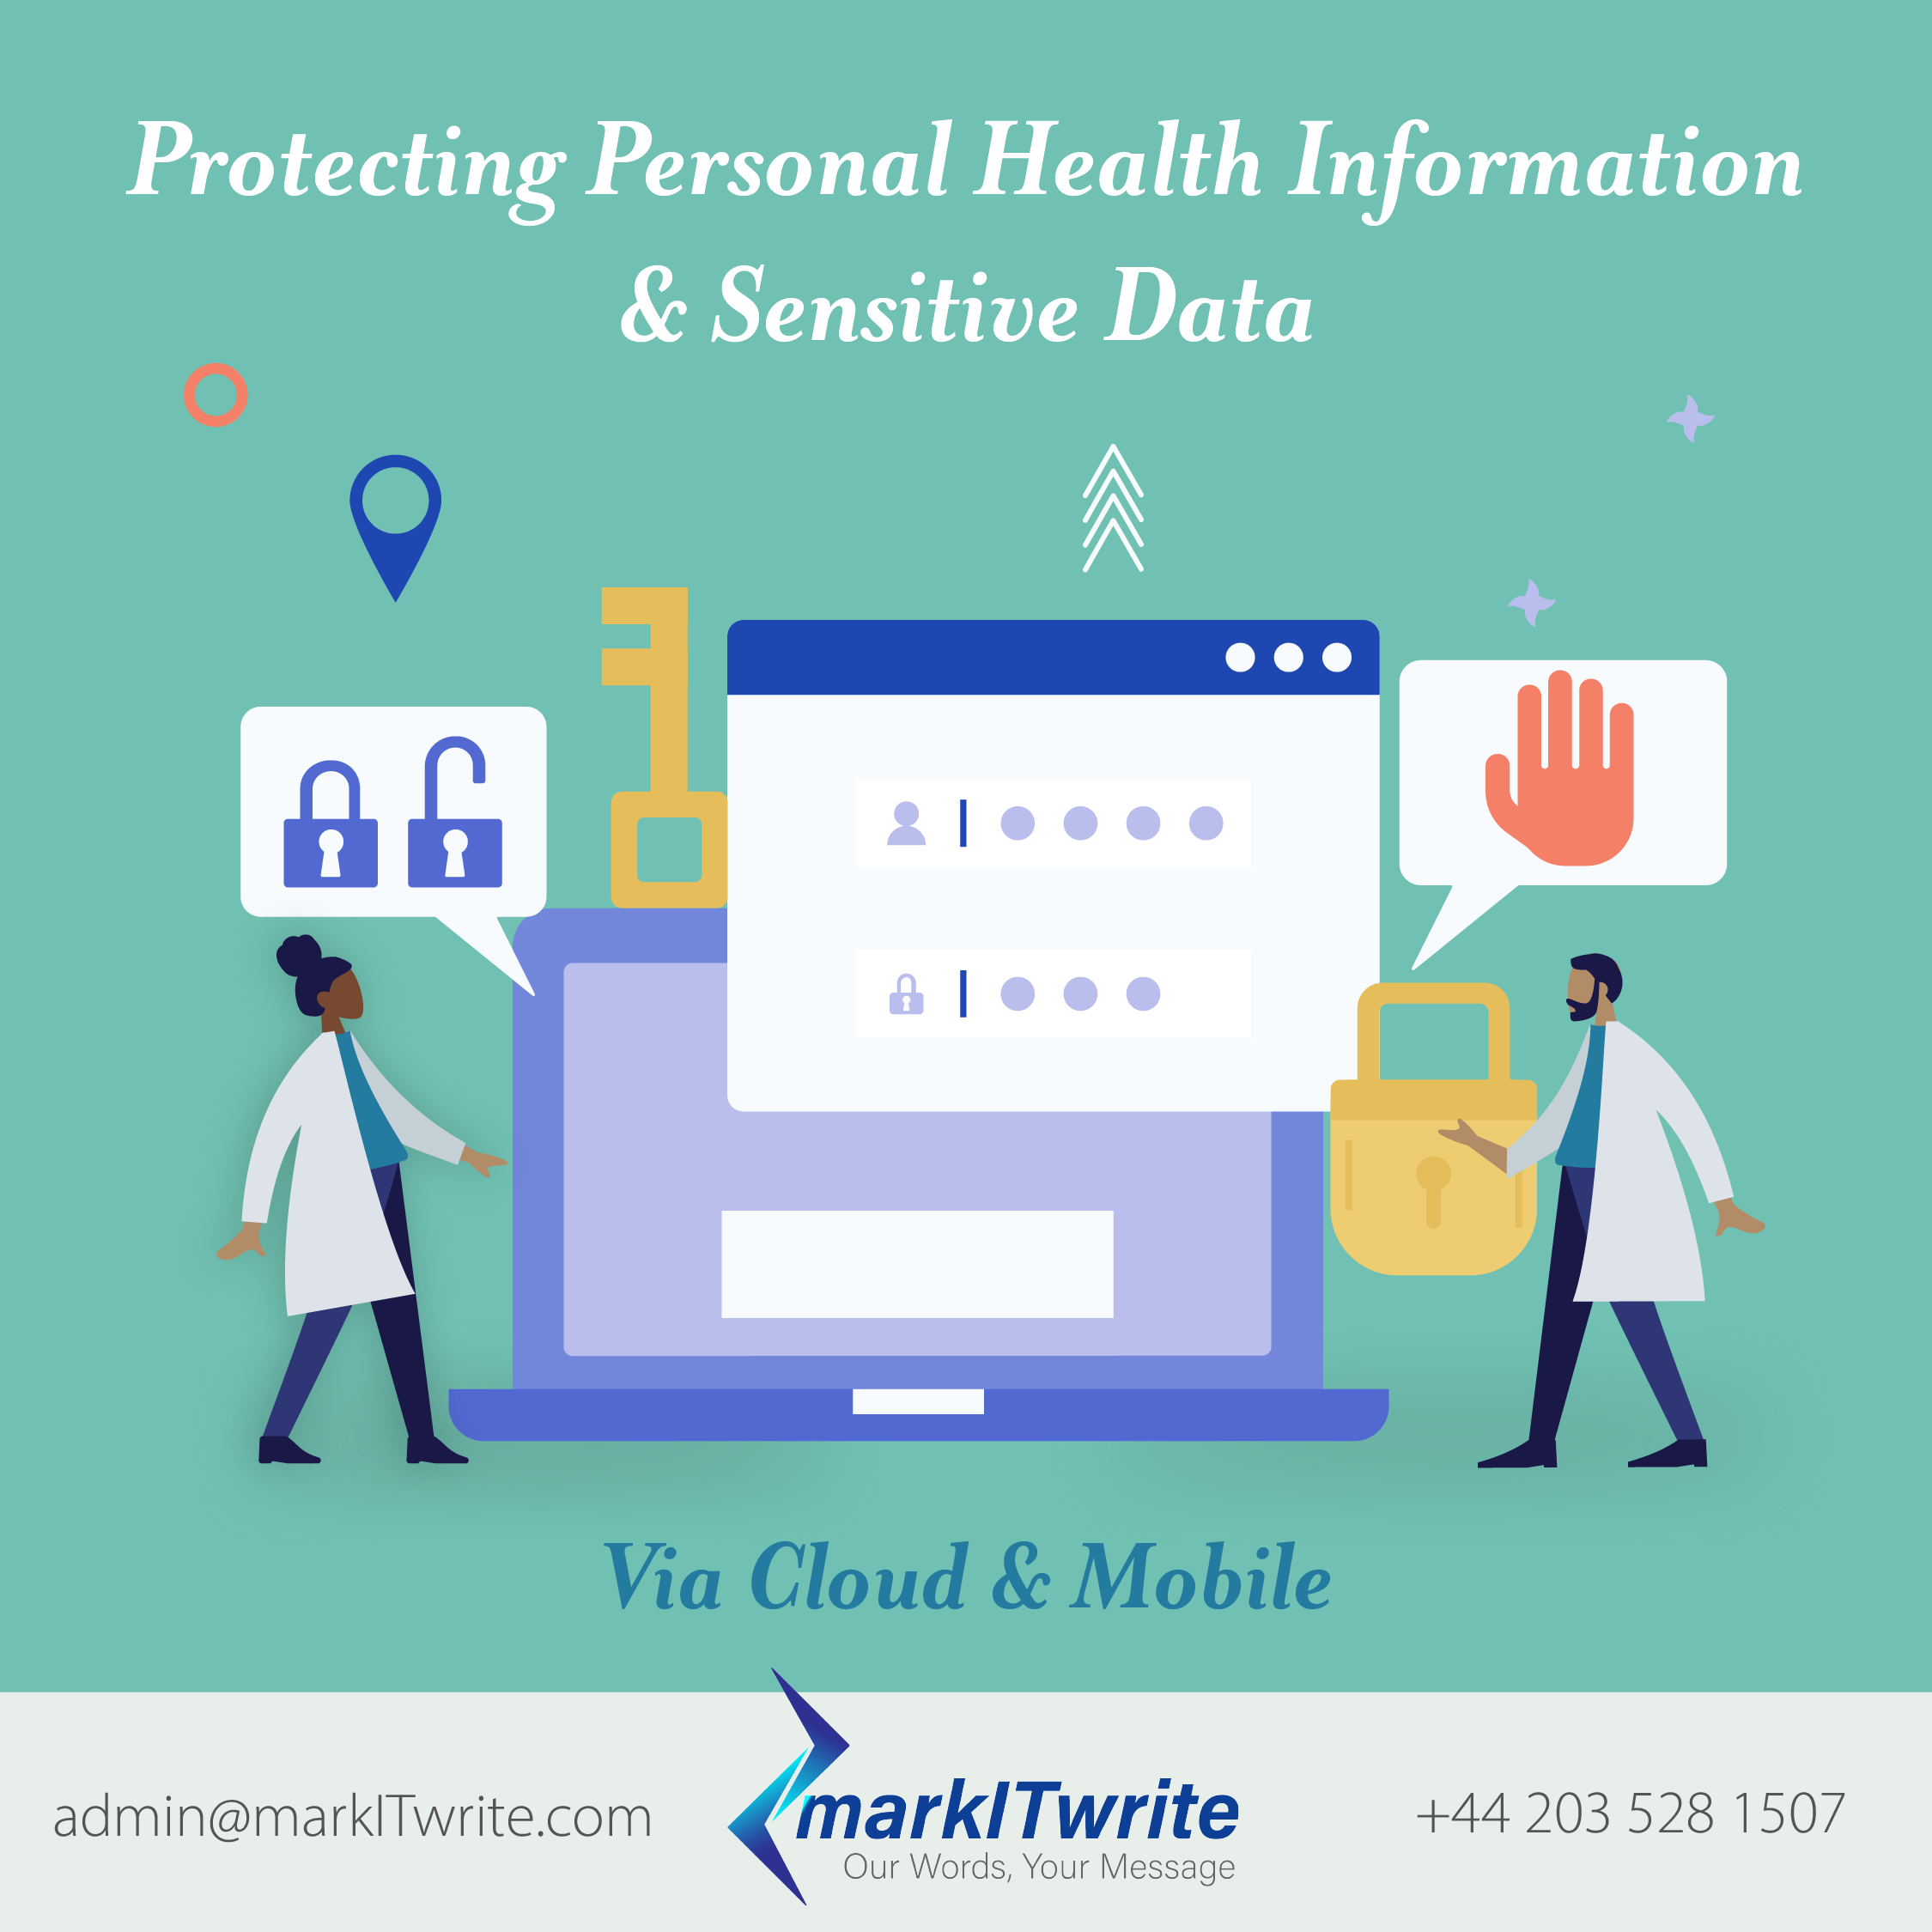 Protecting Personal Health Information And Sensitive Data Via Cloud And Mobile